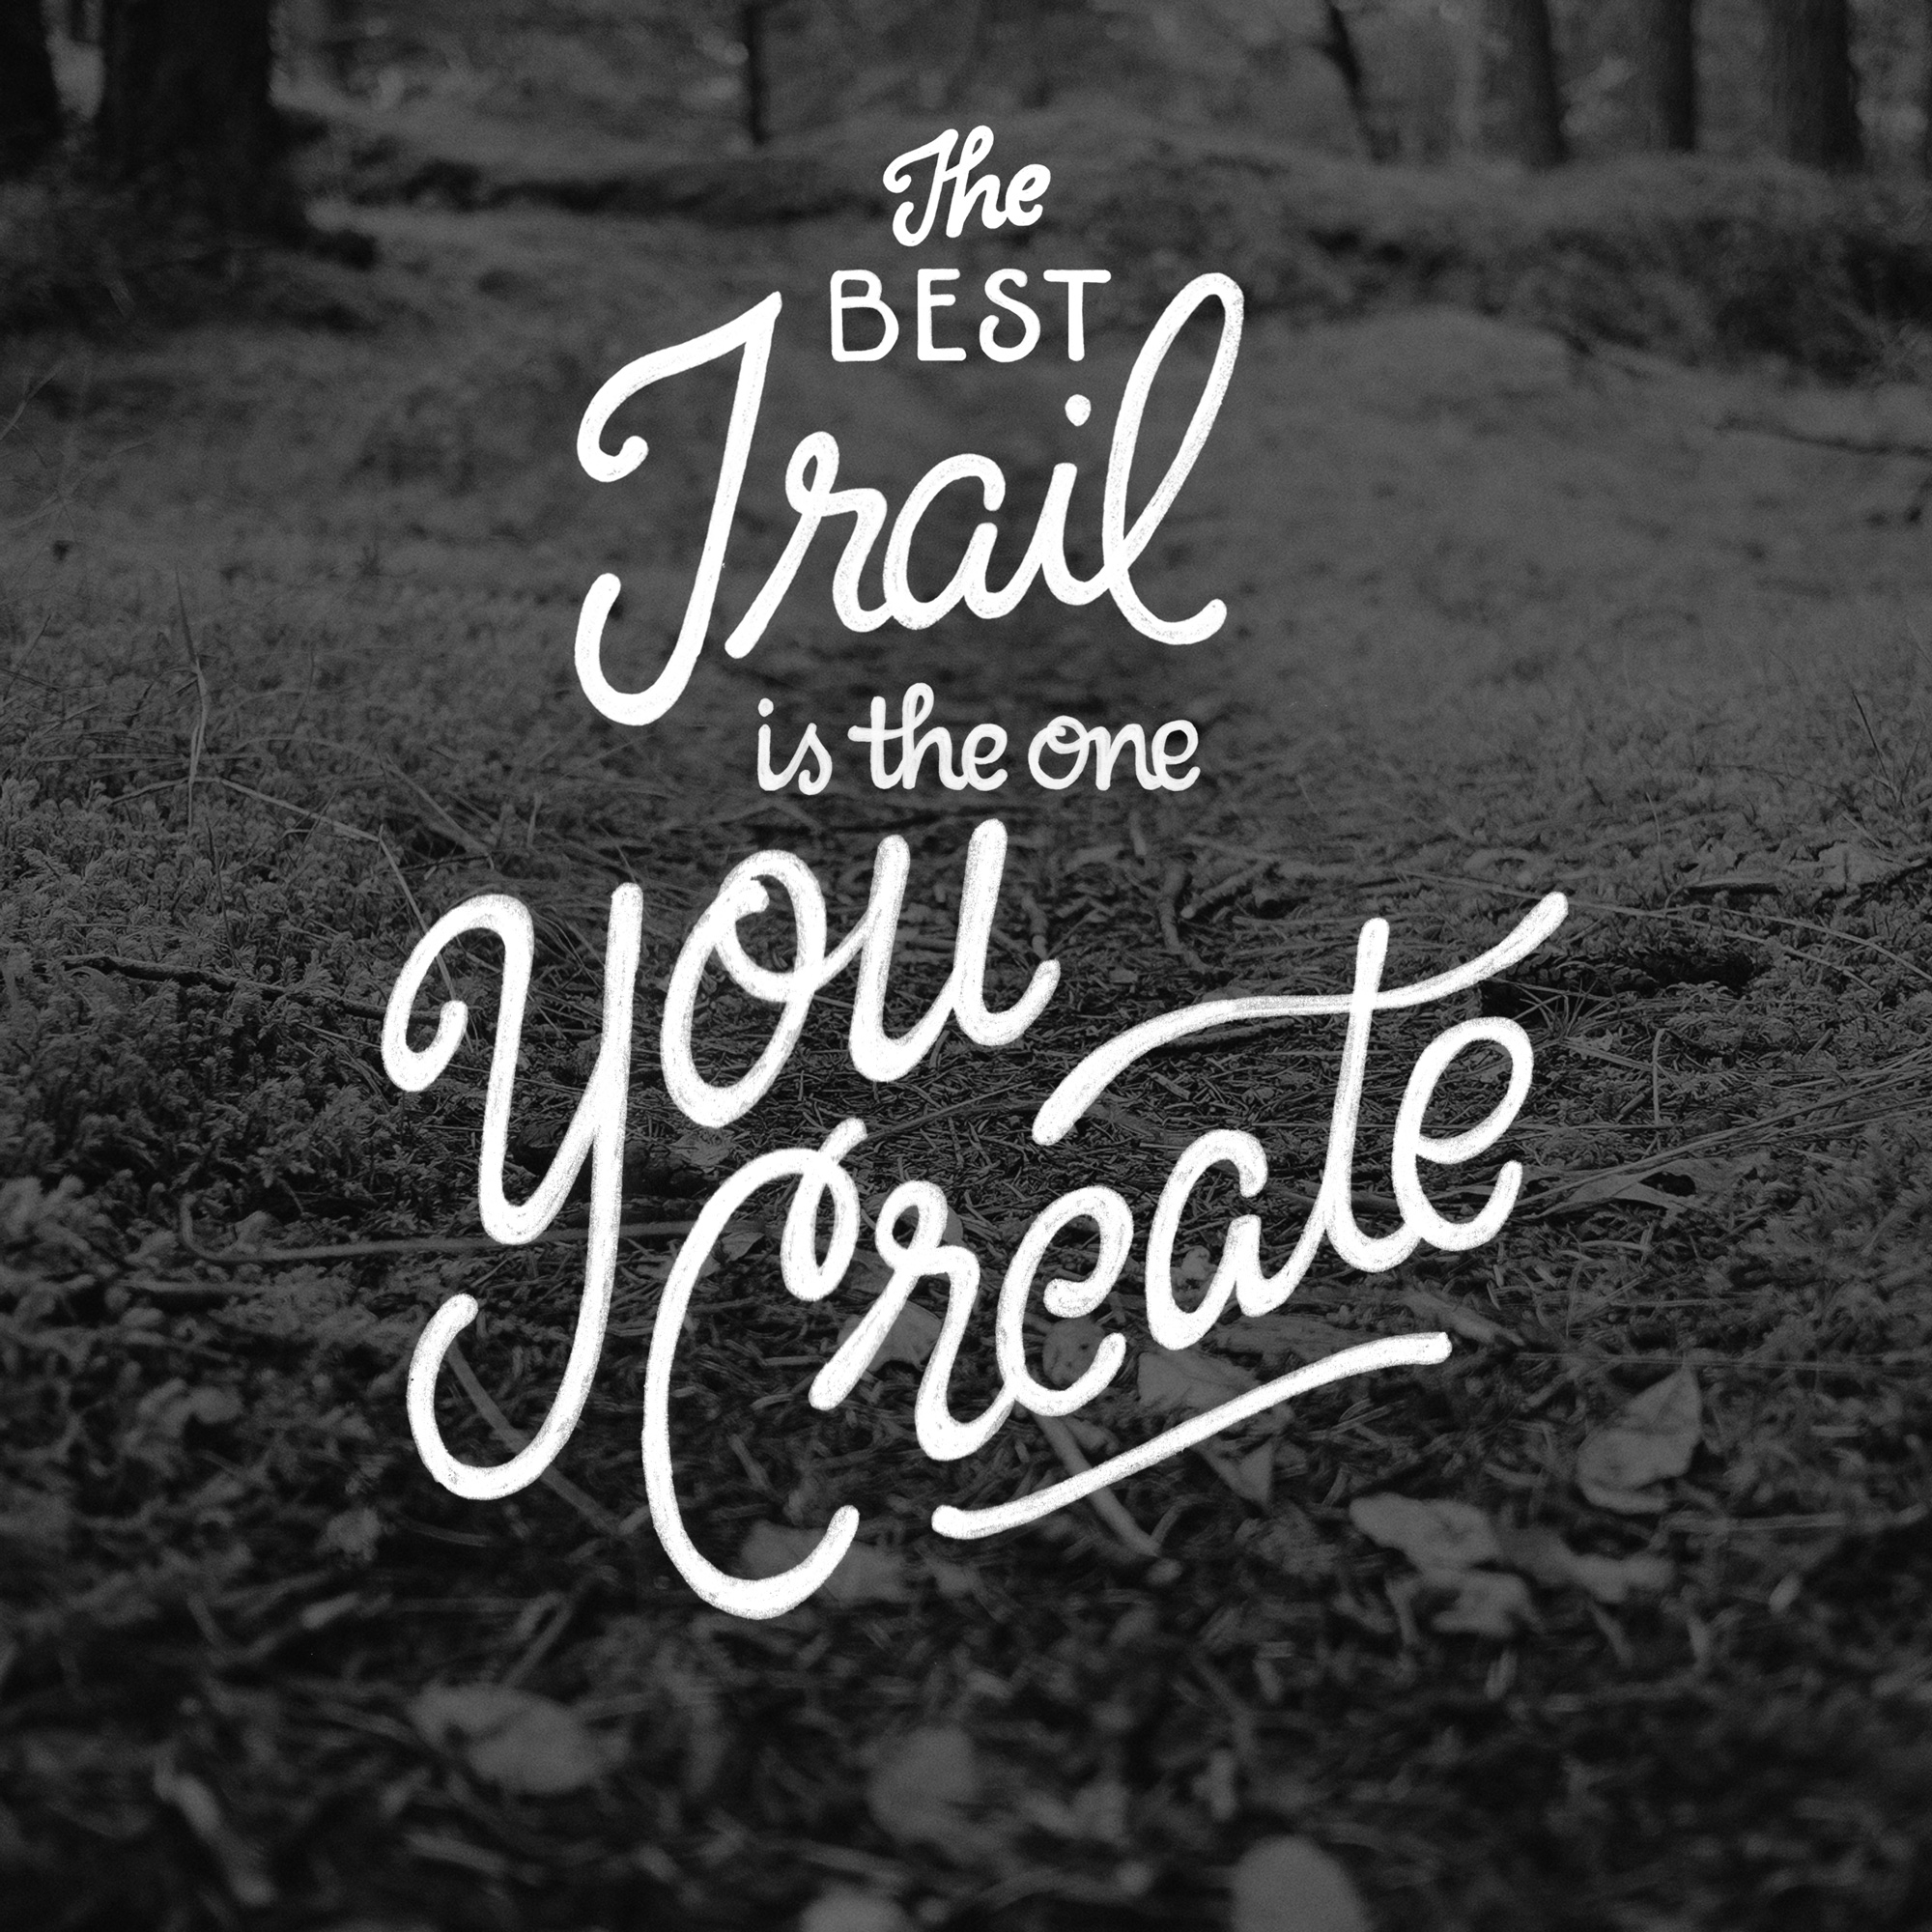 the best trail is the one you create